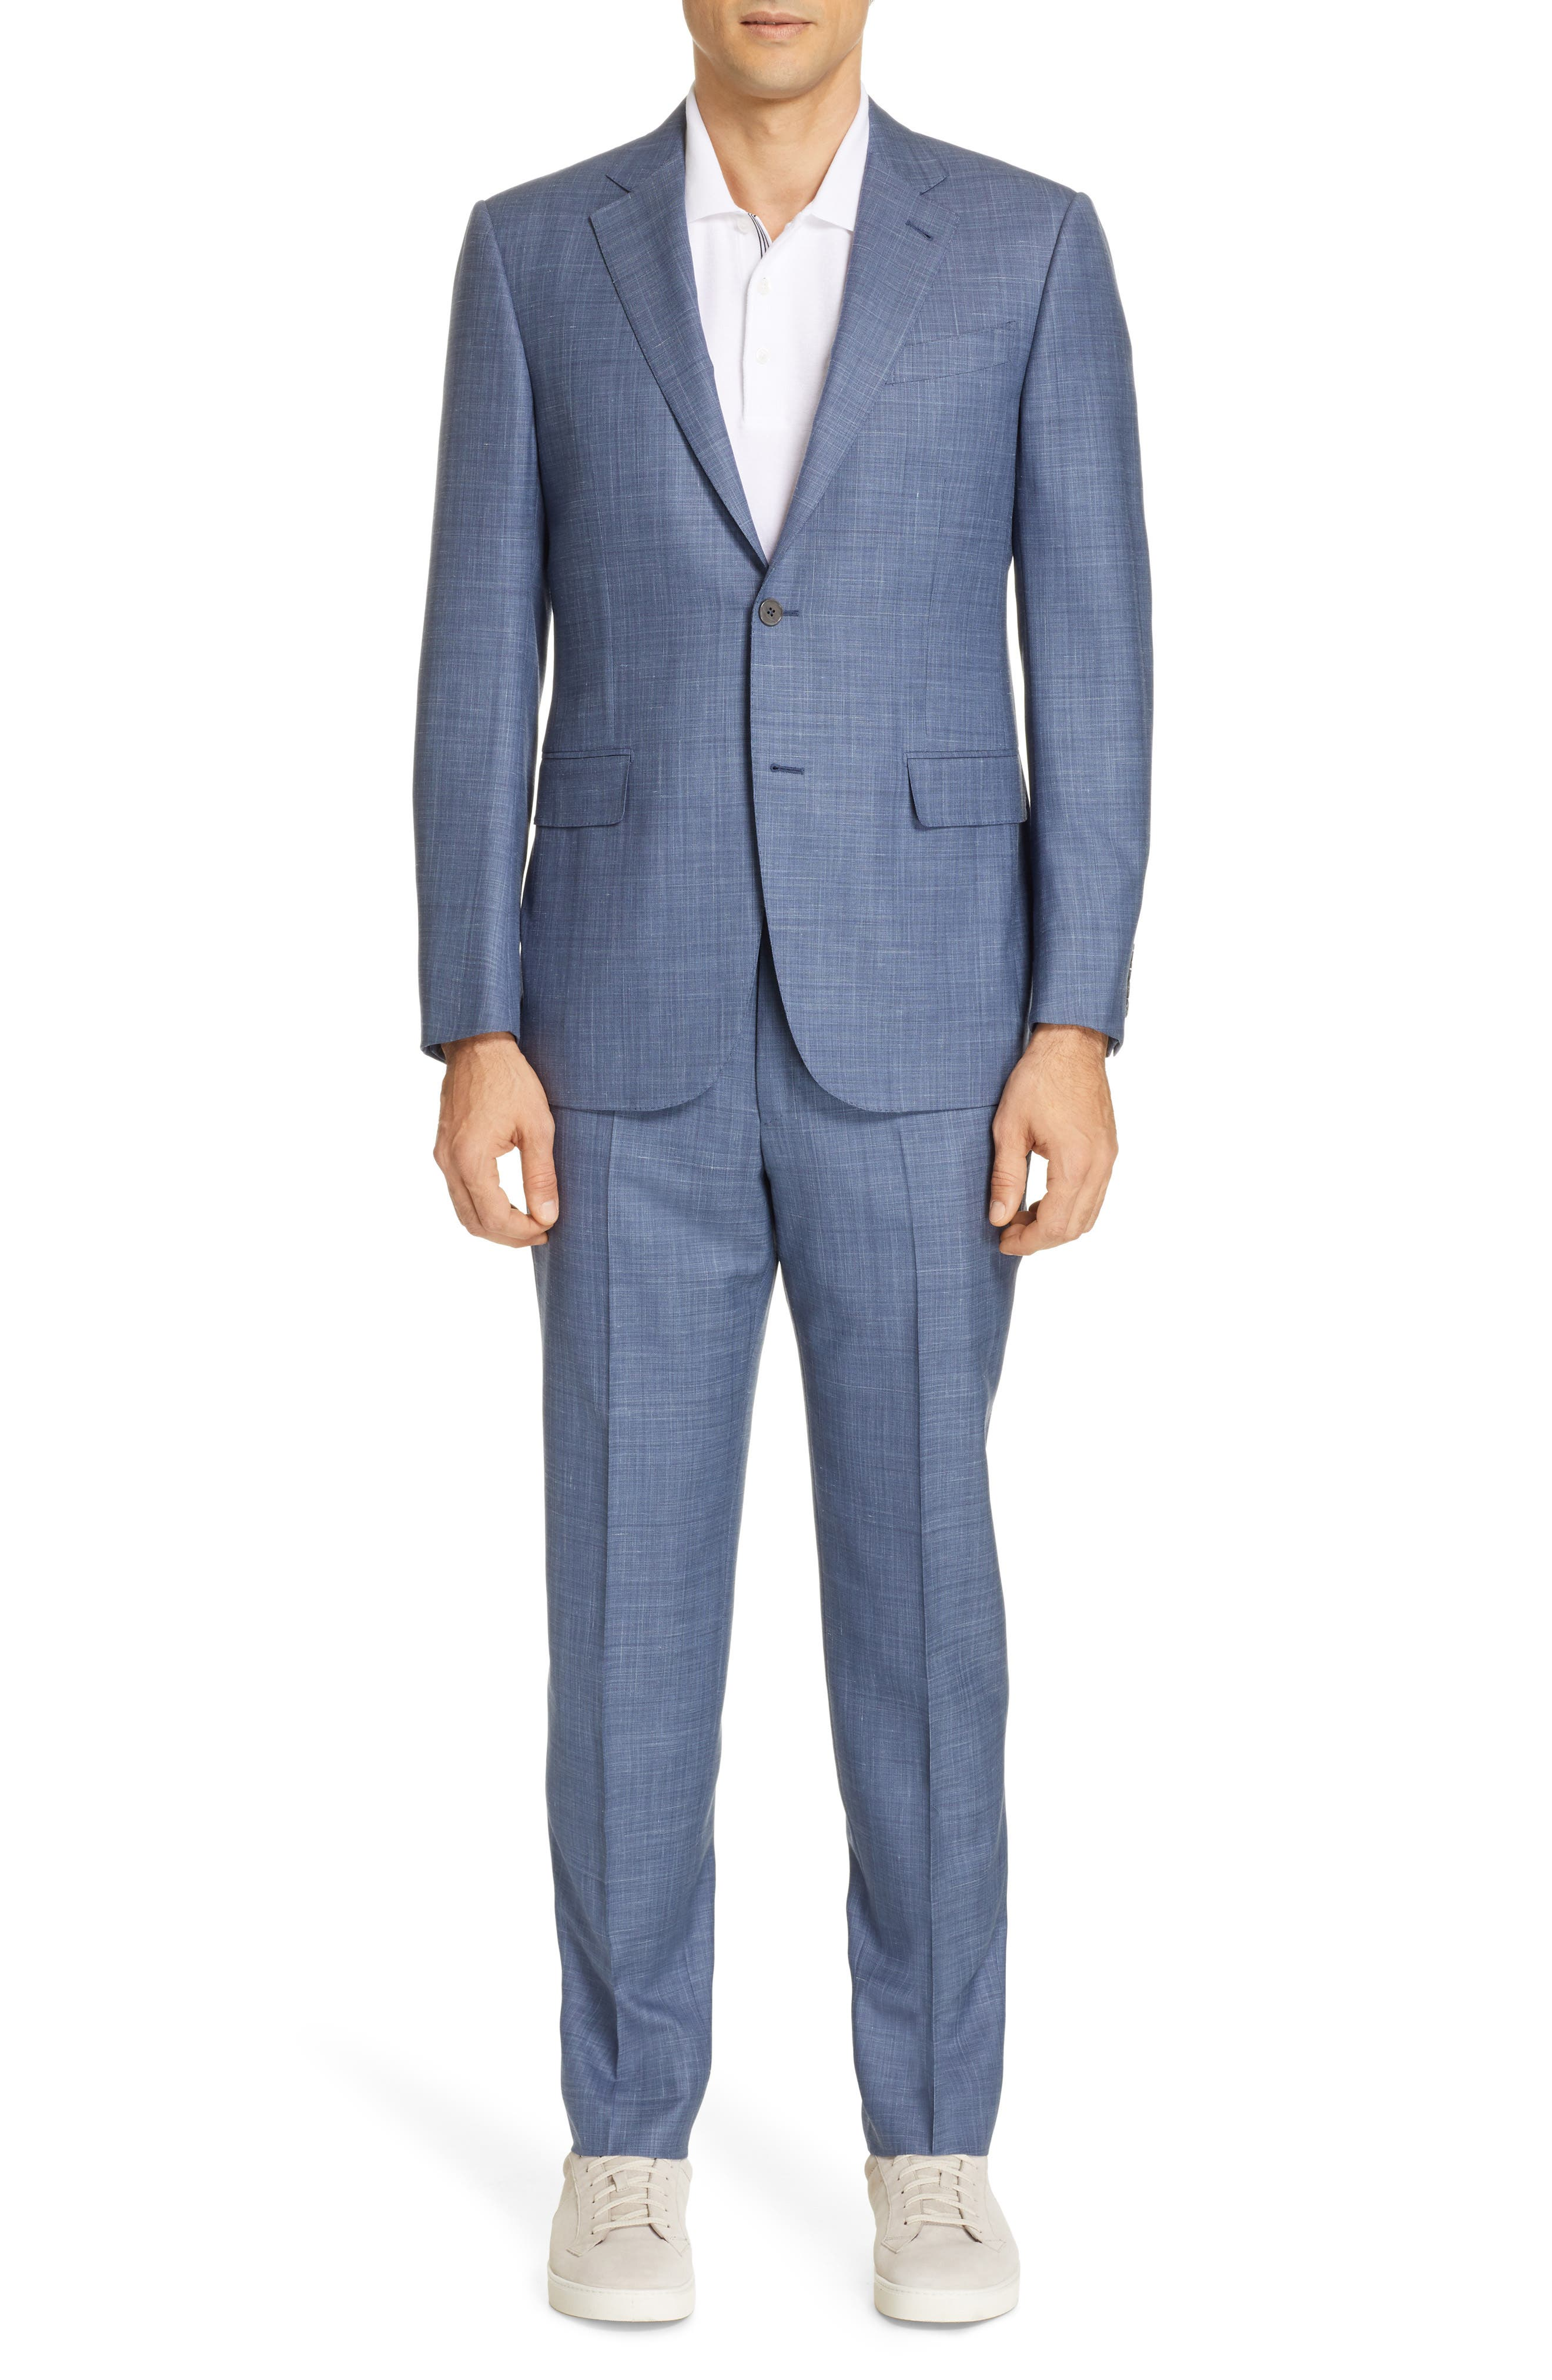 ERMENEGILDO ZEGNA, Trofeo Classic Fit Solid Wool Blend Suit, Main thumbnail 1, color, BLUE